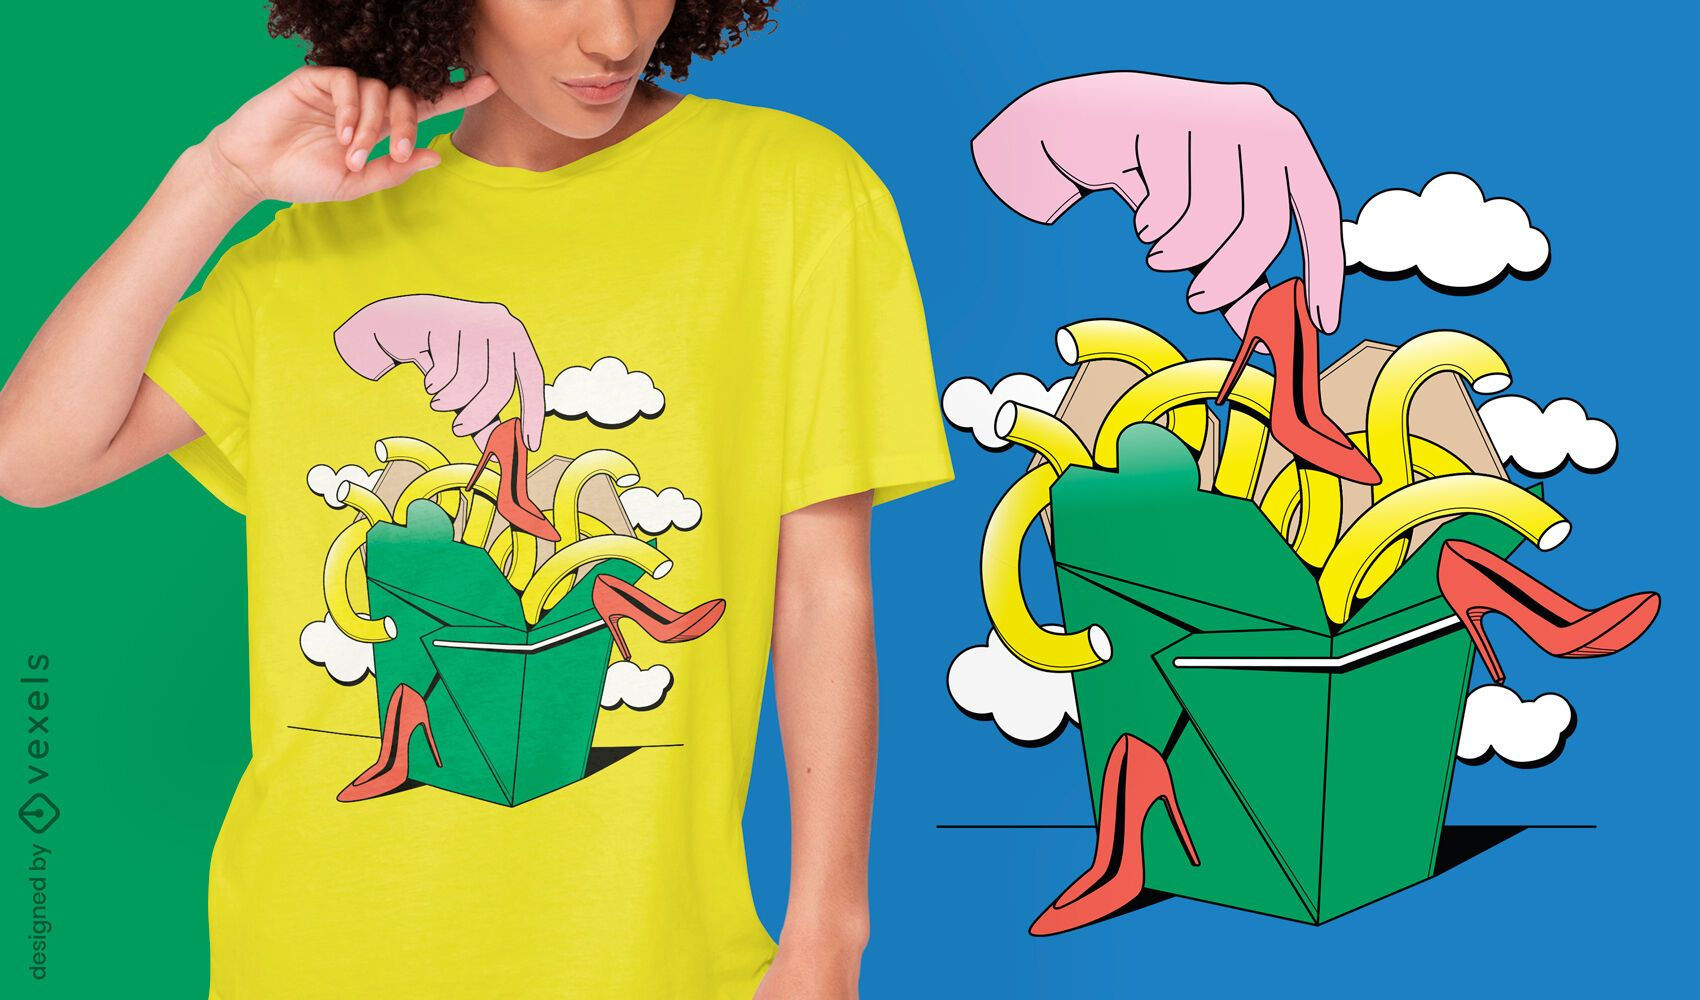 Surreal takeout t-shirt design